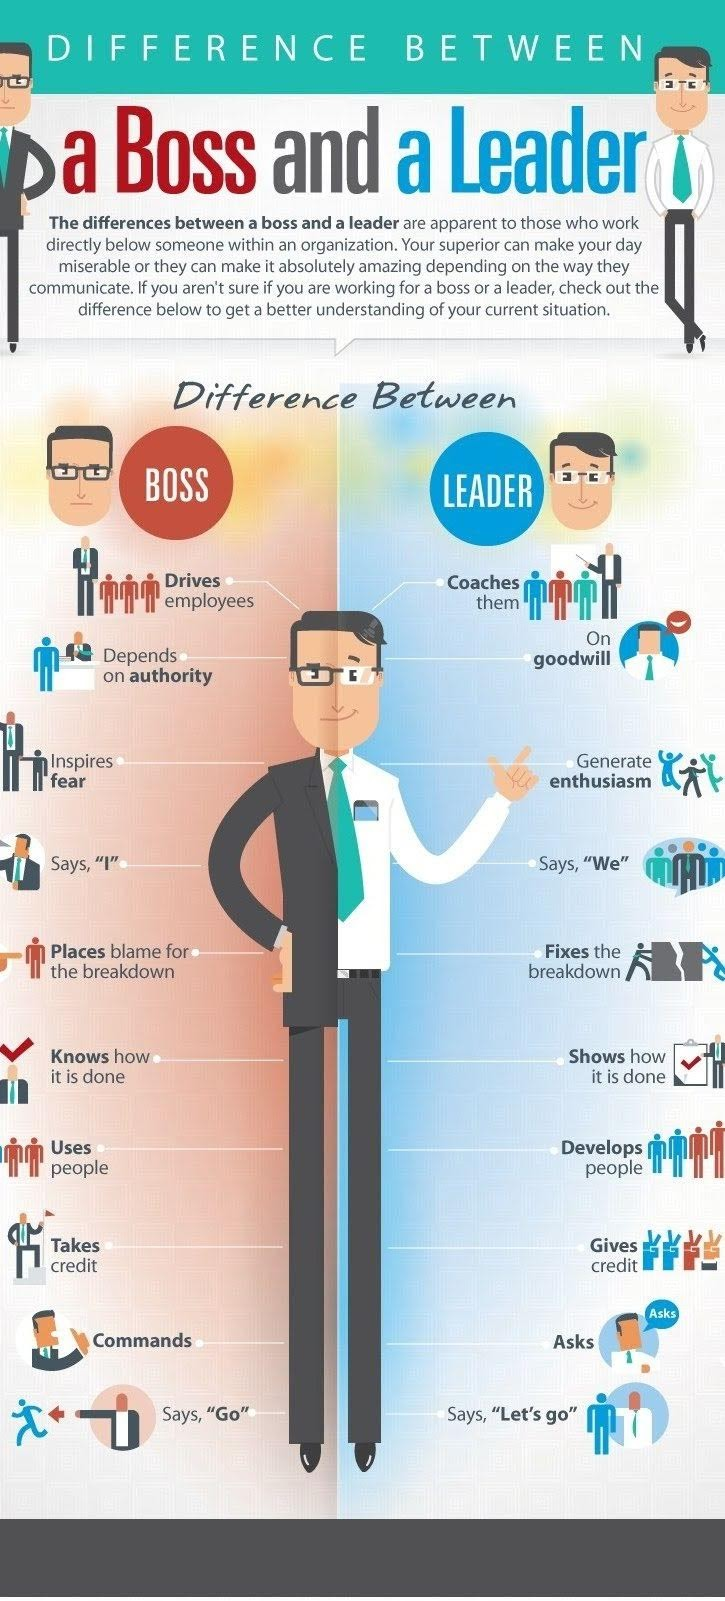 Difference Between a boss and a leader #infographic